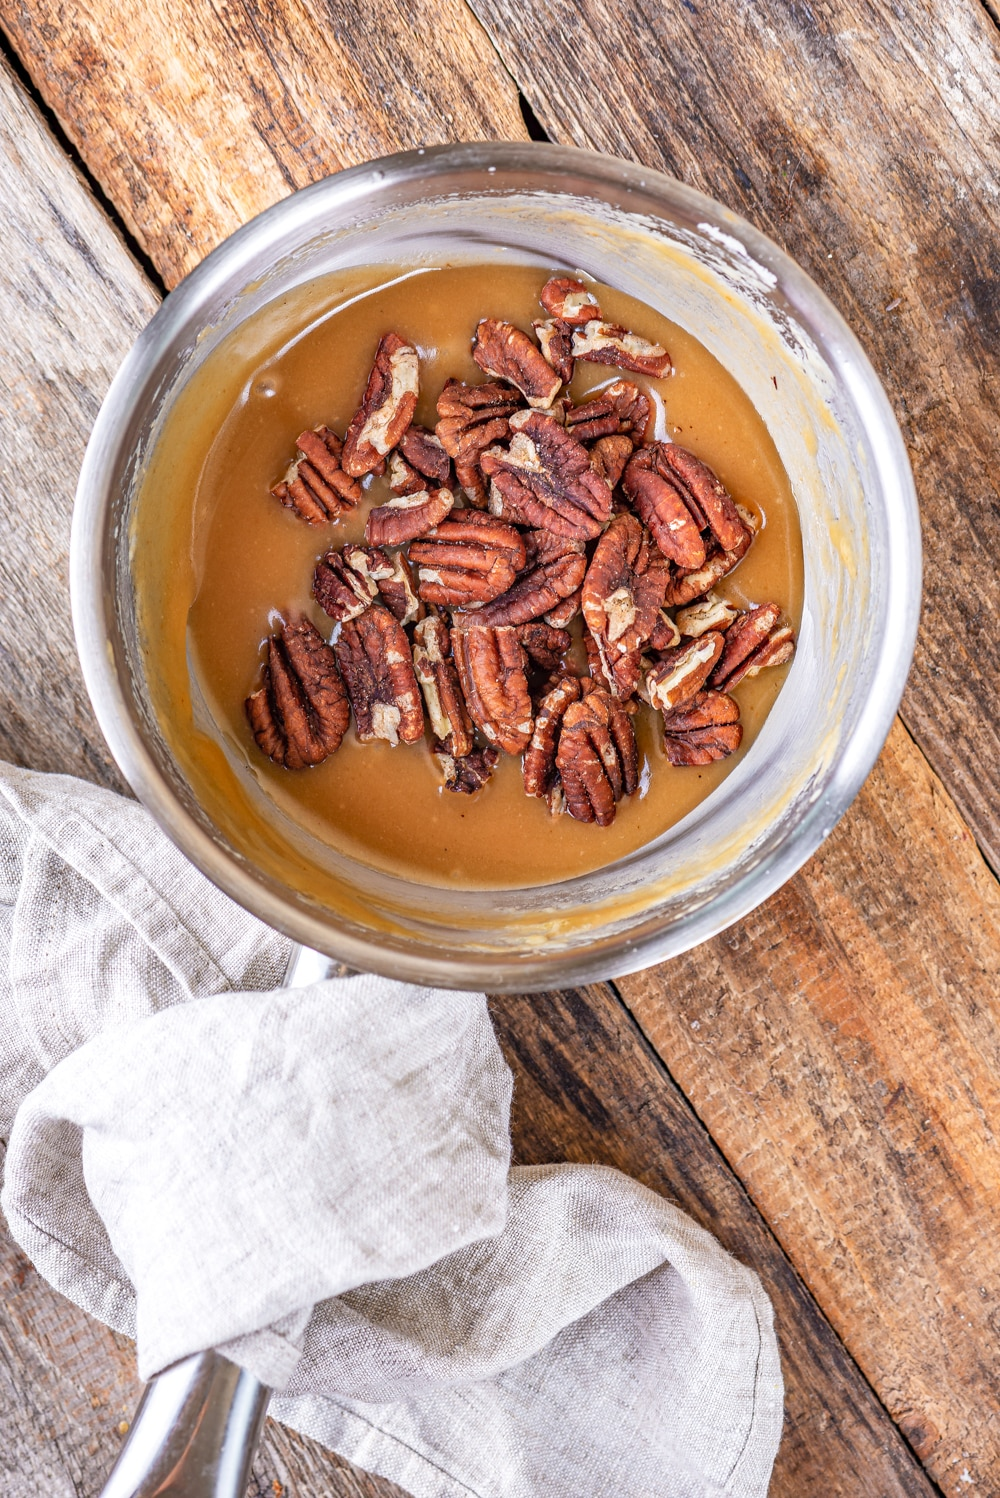 A tin pot filled with caramelized butter and pecans.